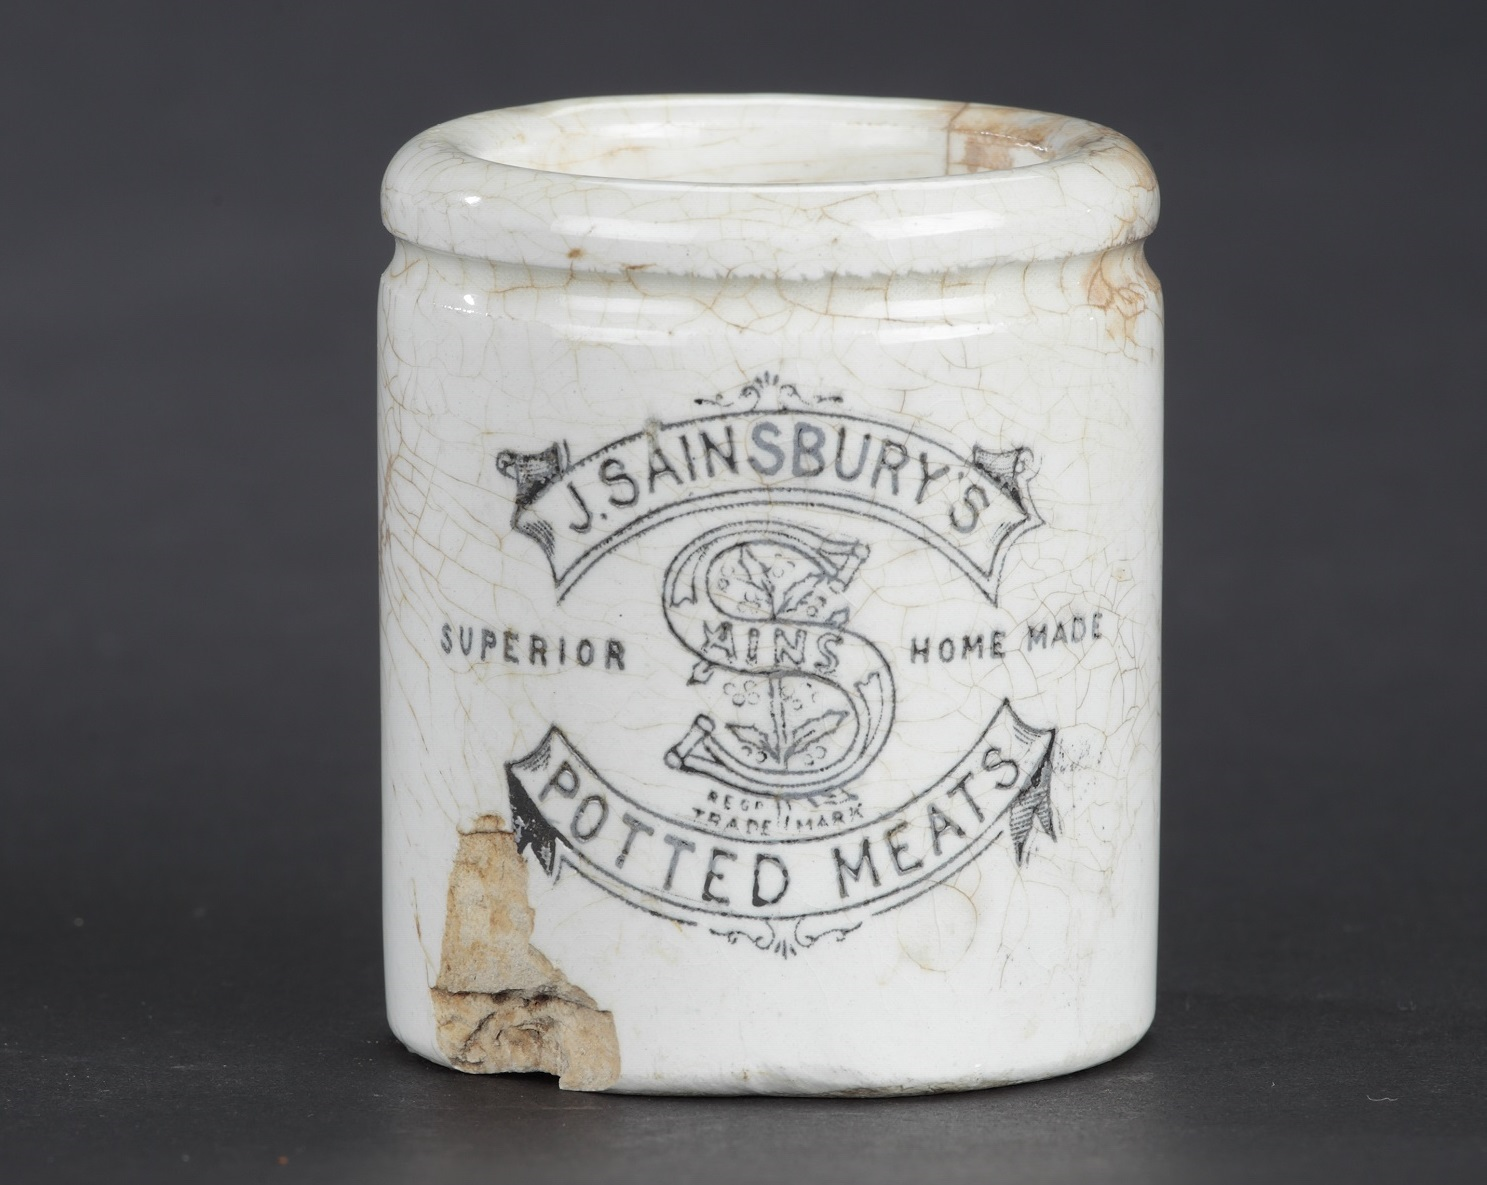 Sainsbury's Potted Meat jar in white earthenware, c.1960s